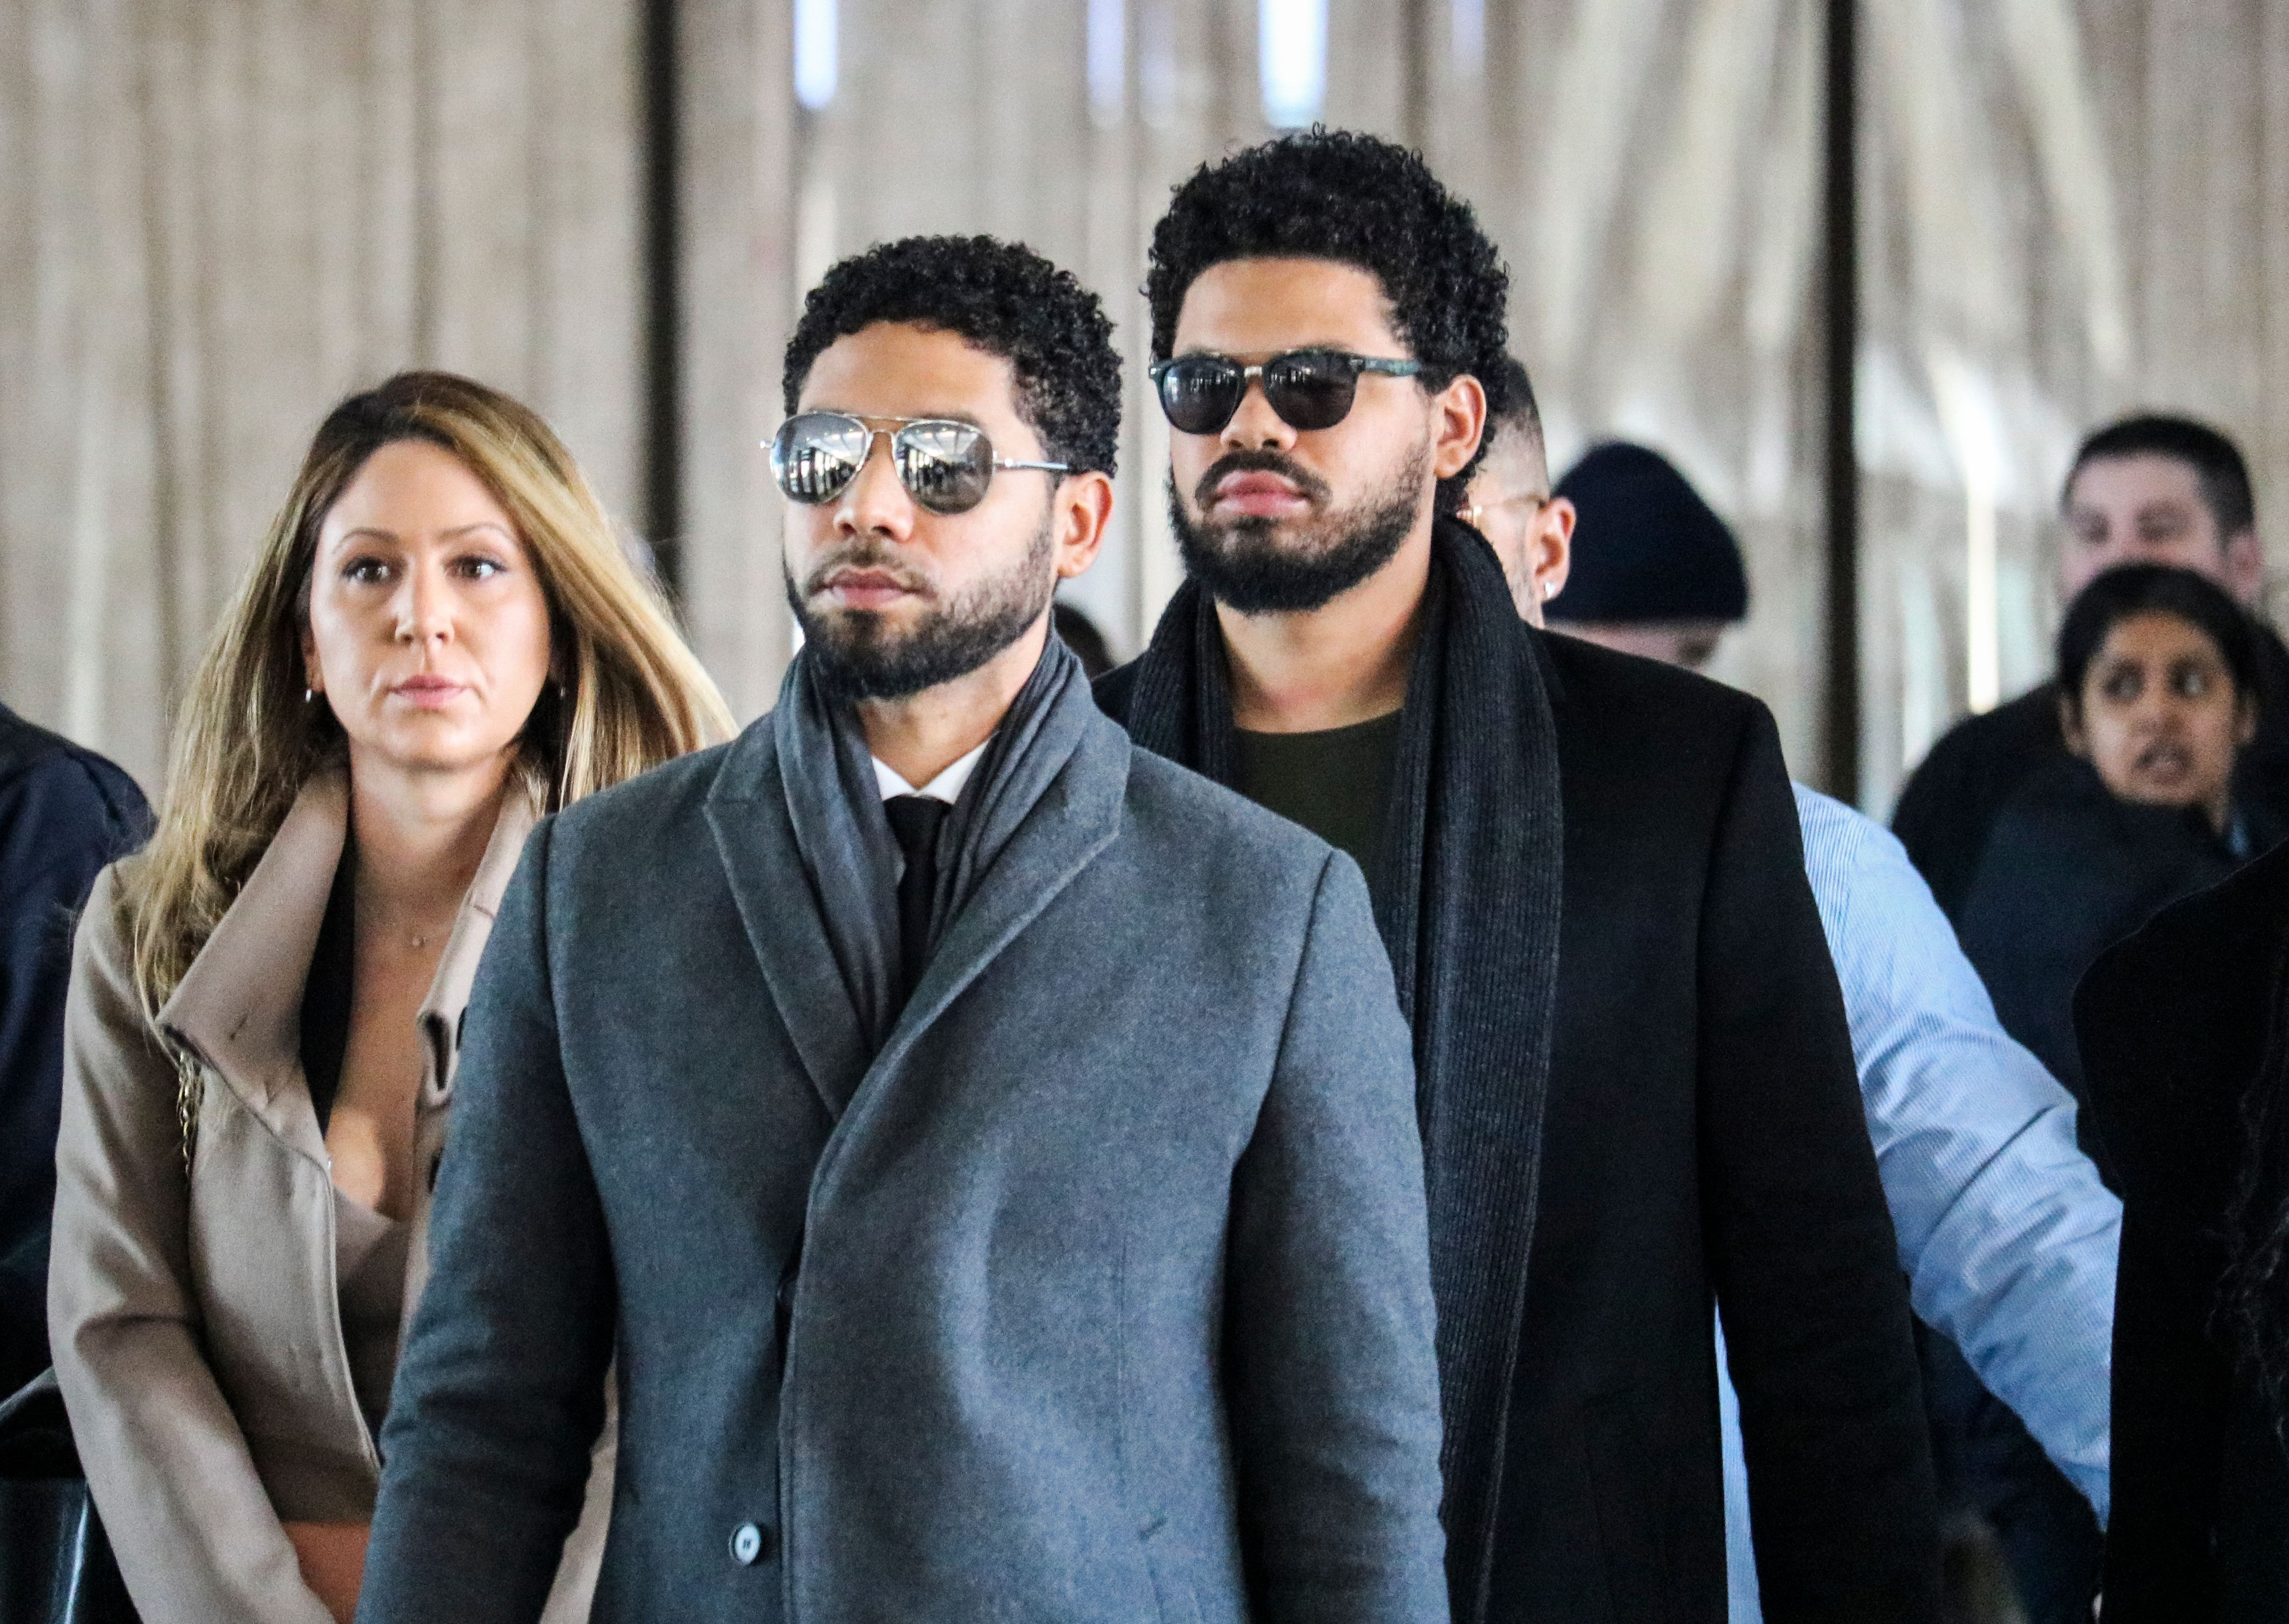 Jussie Smollett Pleads Not Guilty in Hoax Assault Case